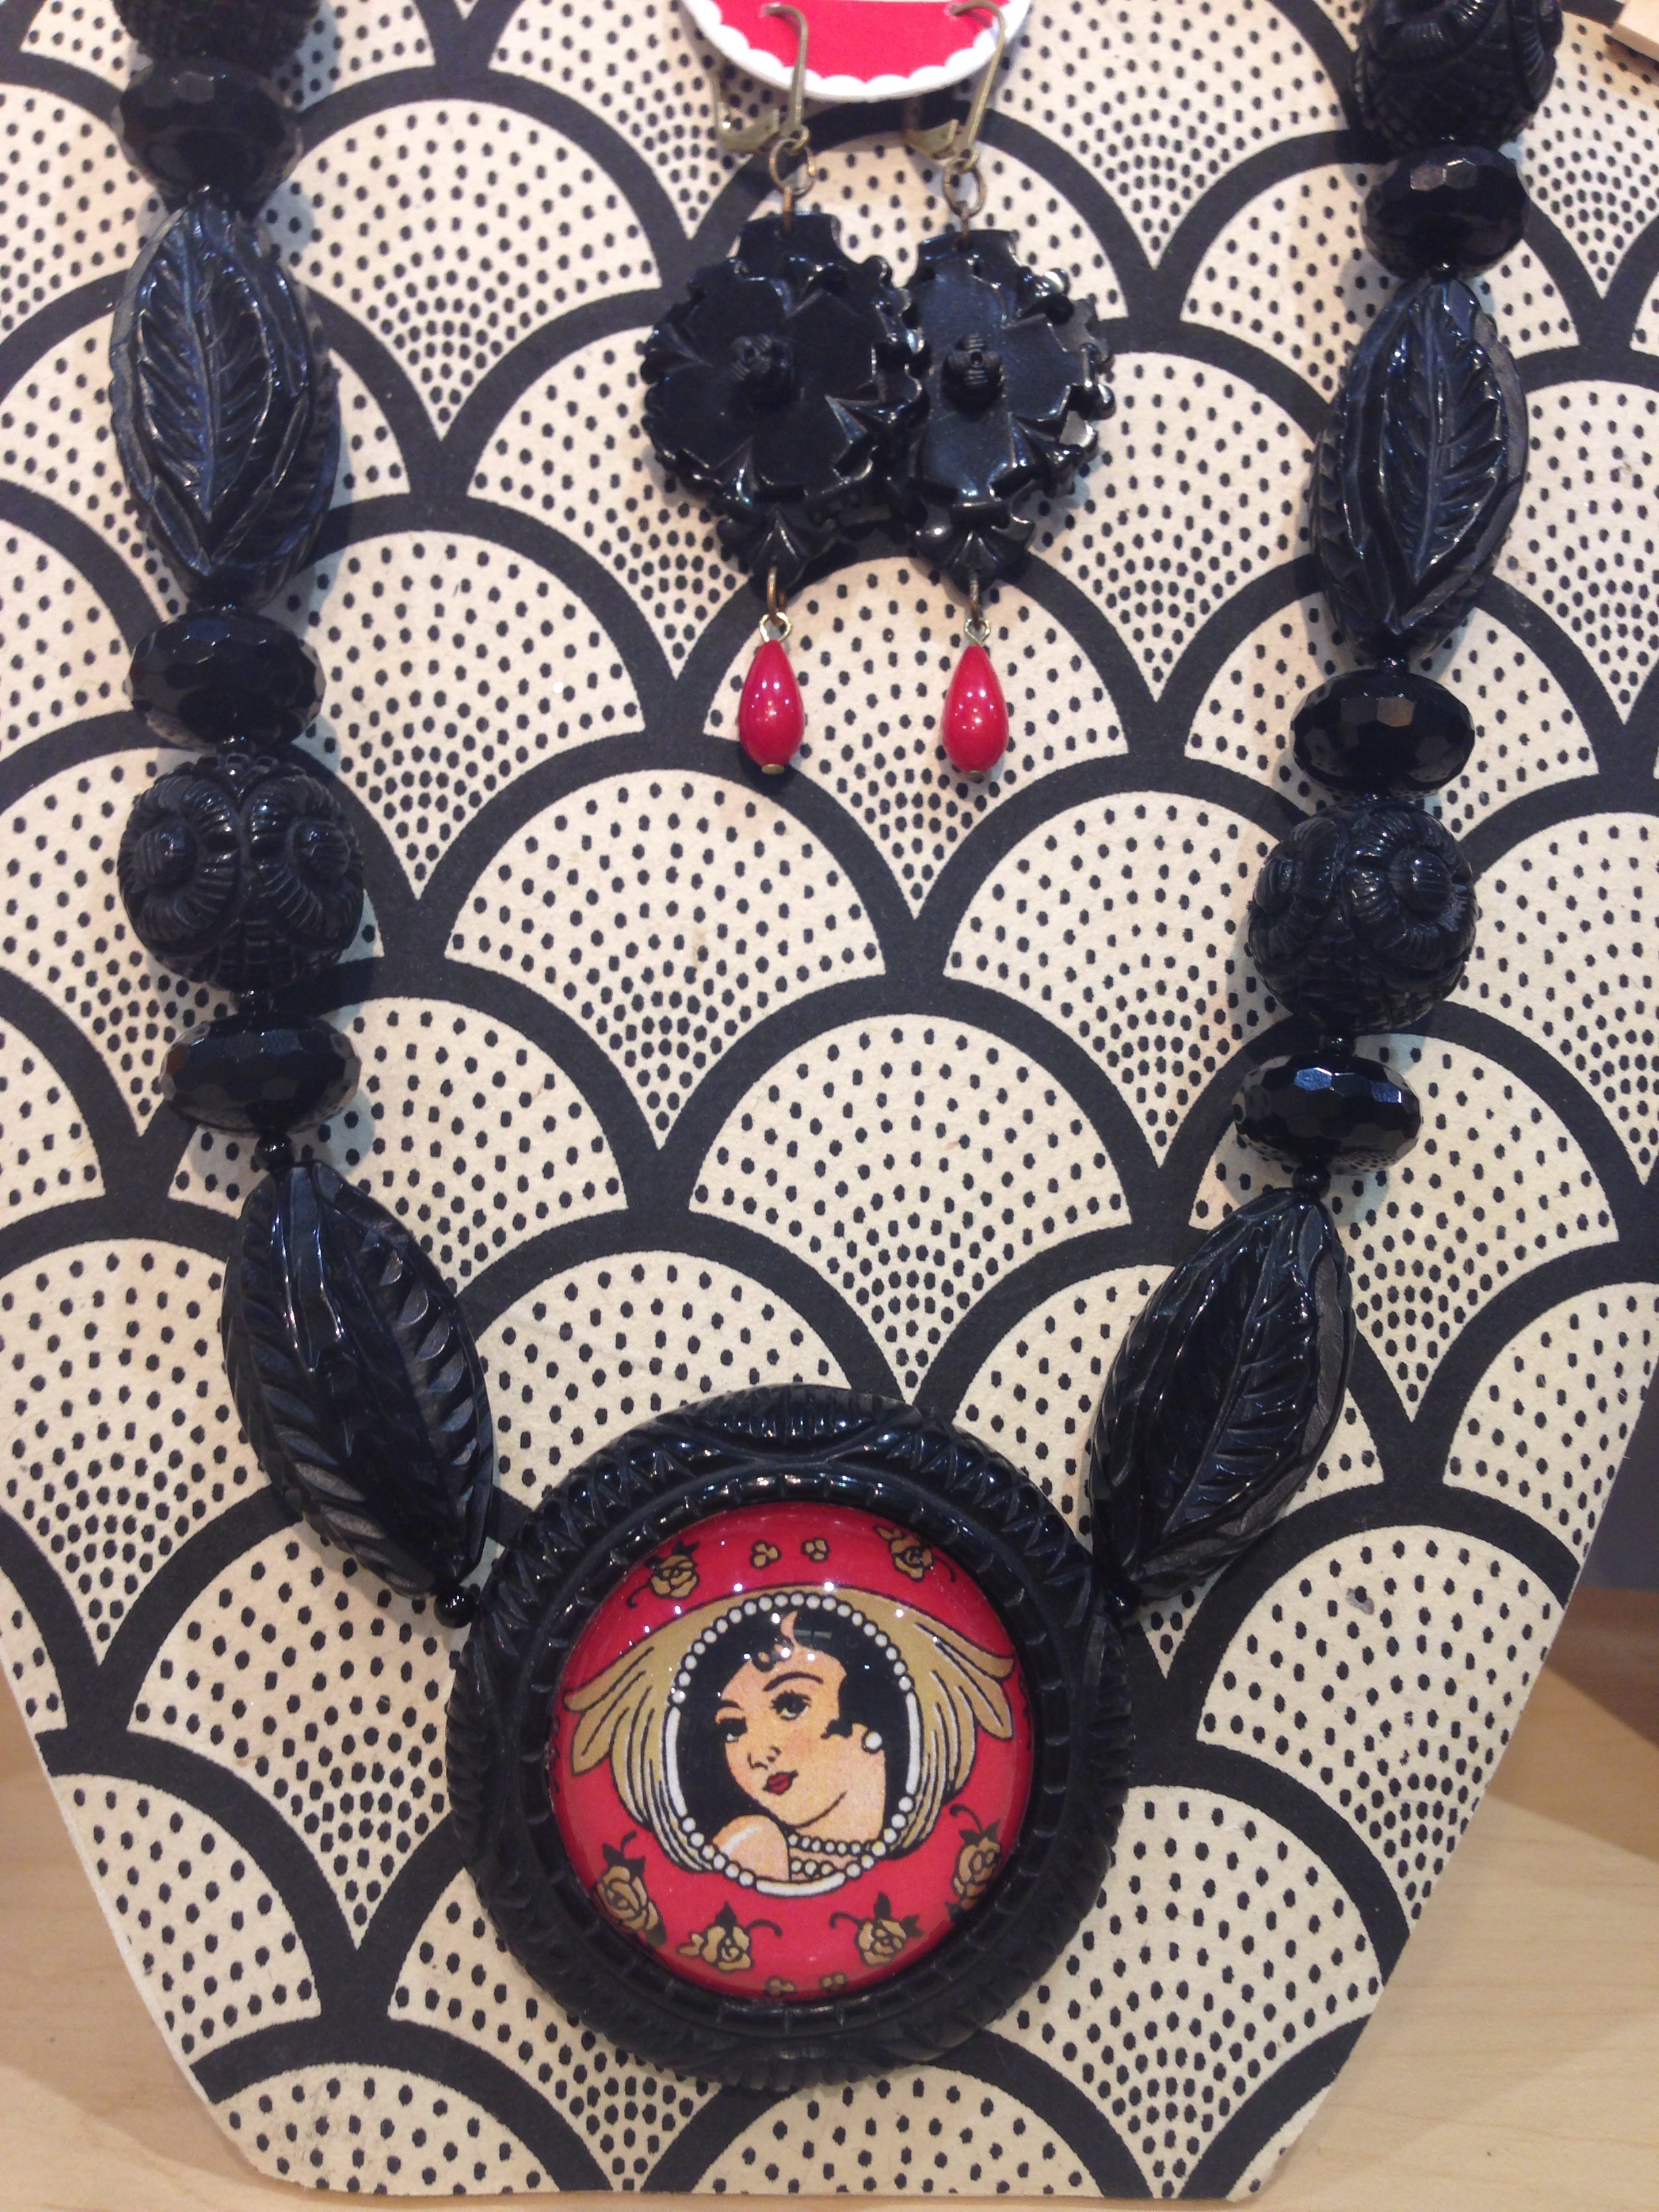 I really love these! Georgia brown vintage lady with victorian blk/red earrings!!!